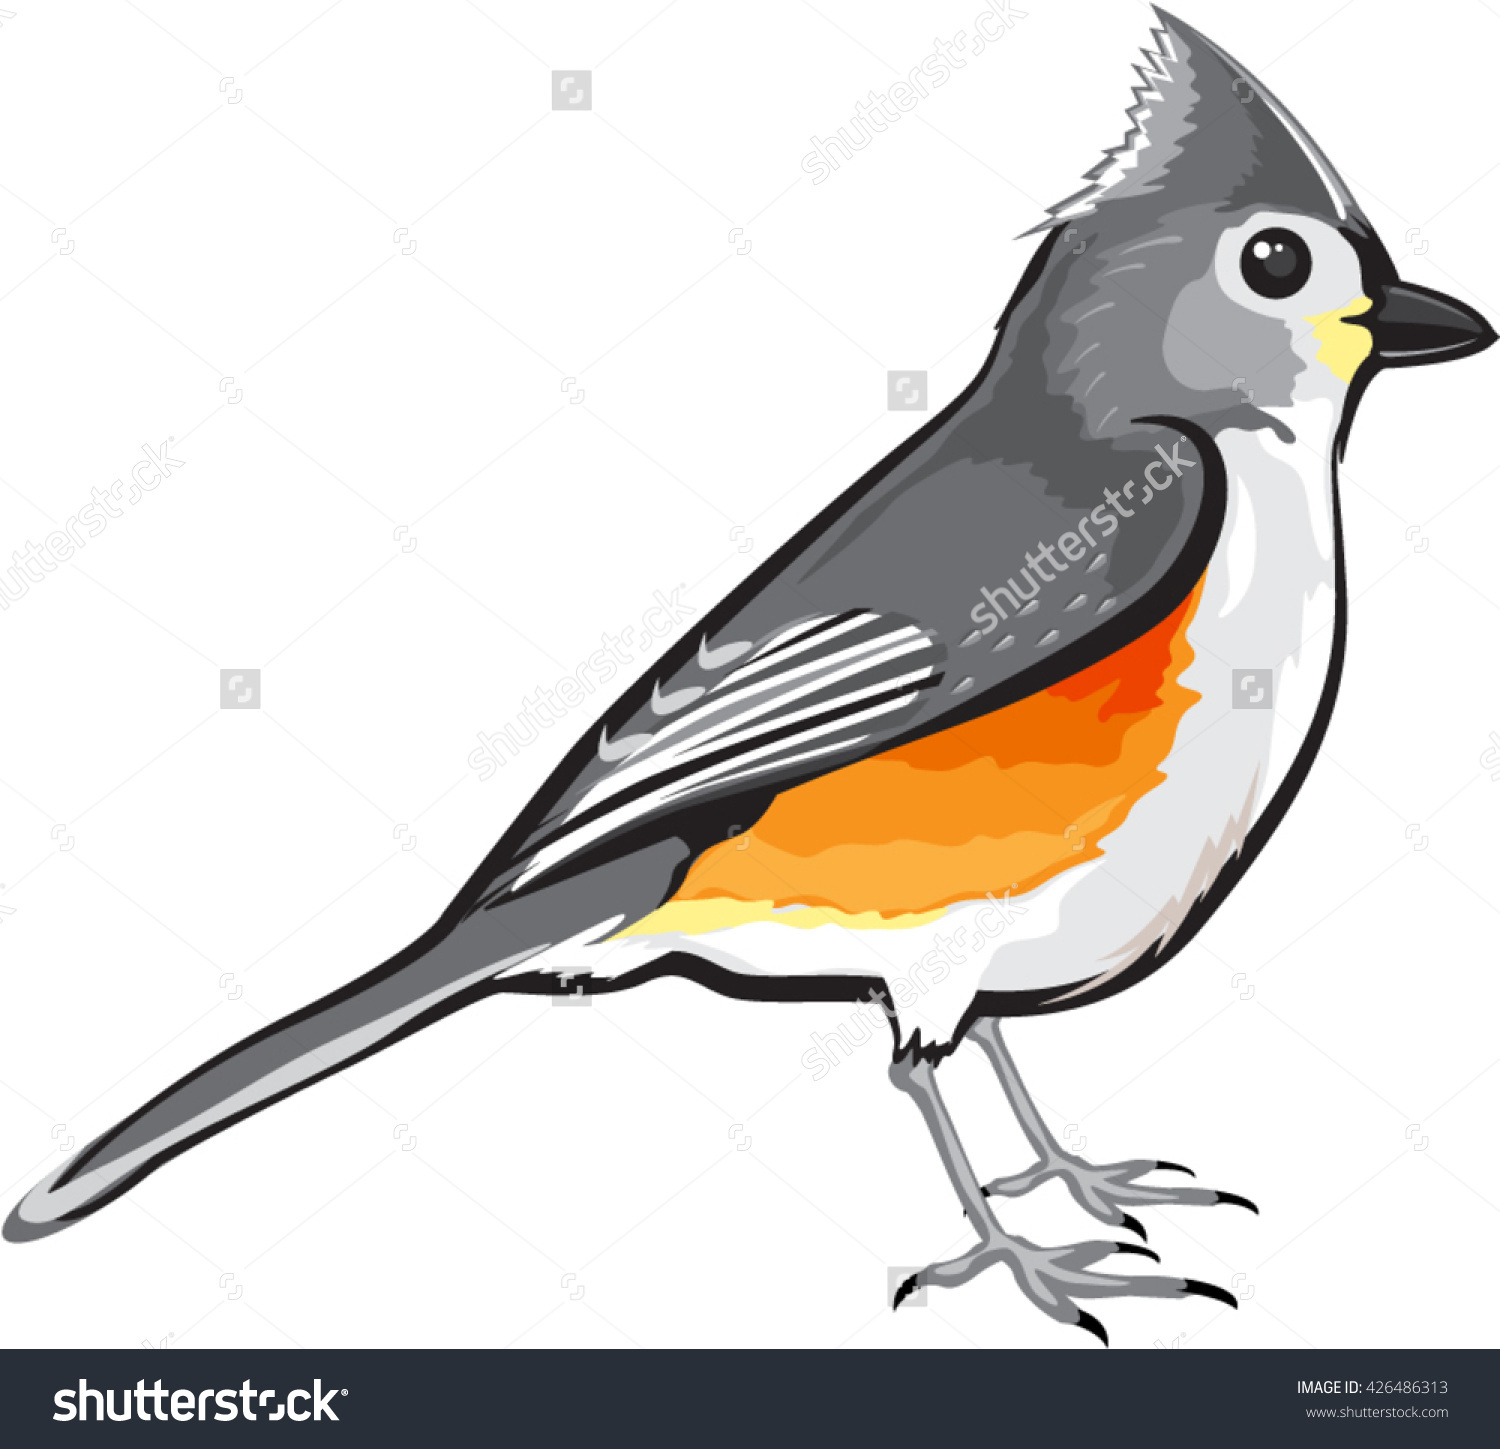 Bridled Titmouse clipart #19, Download drawings